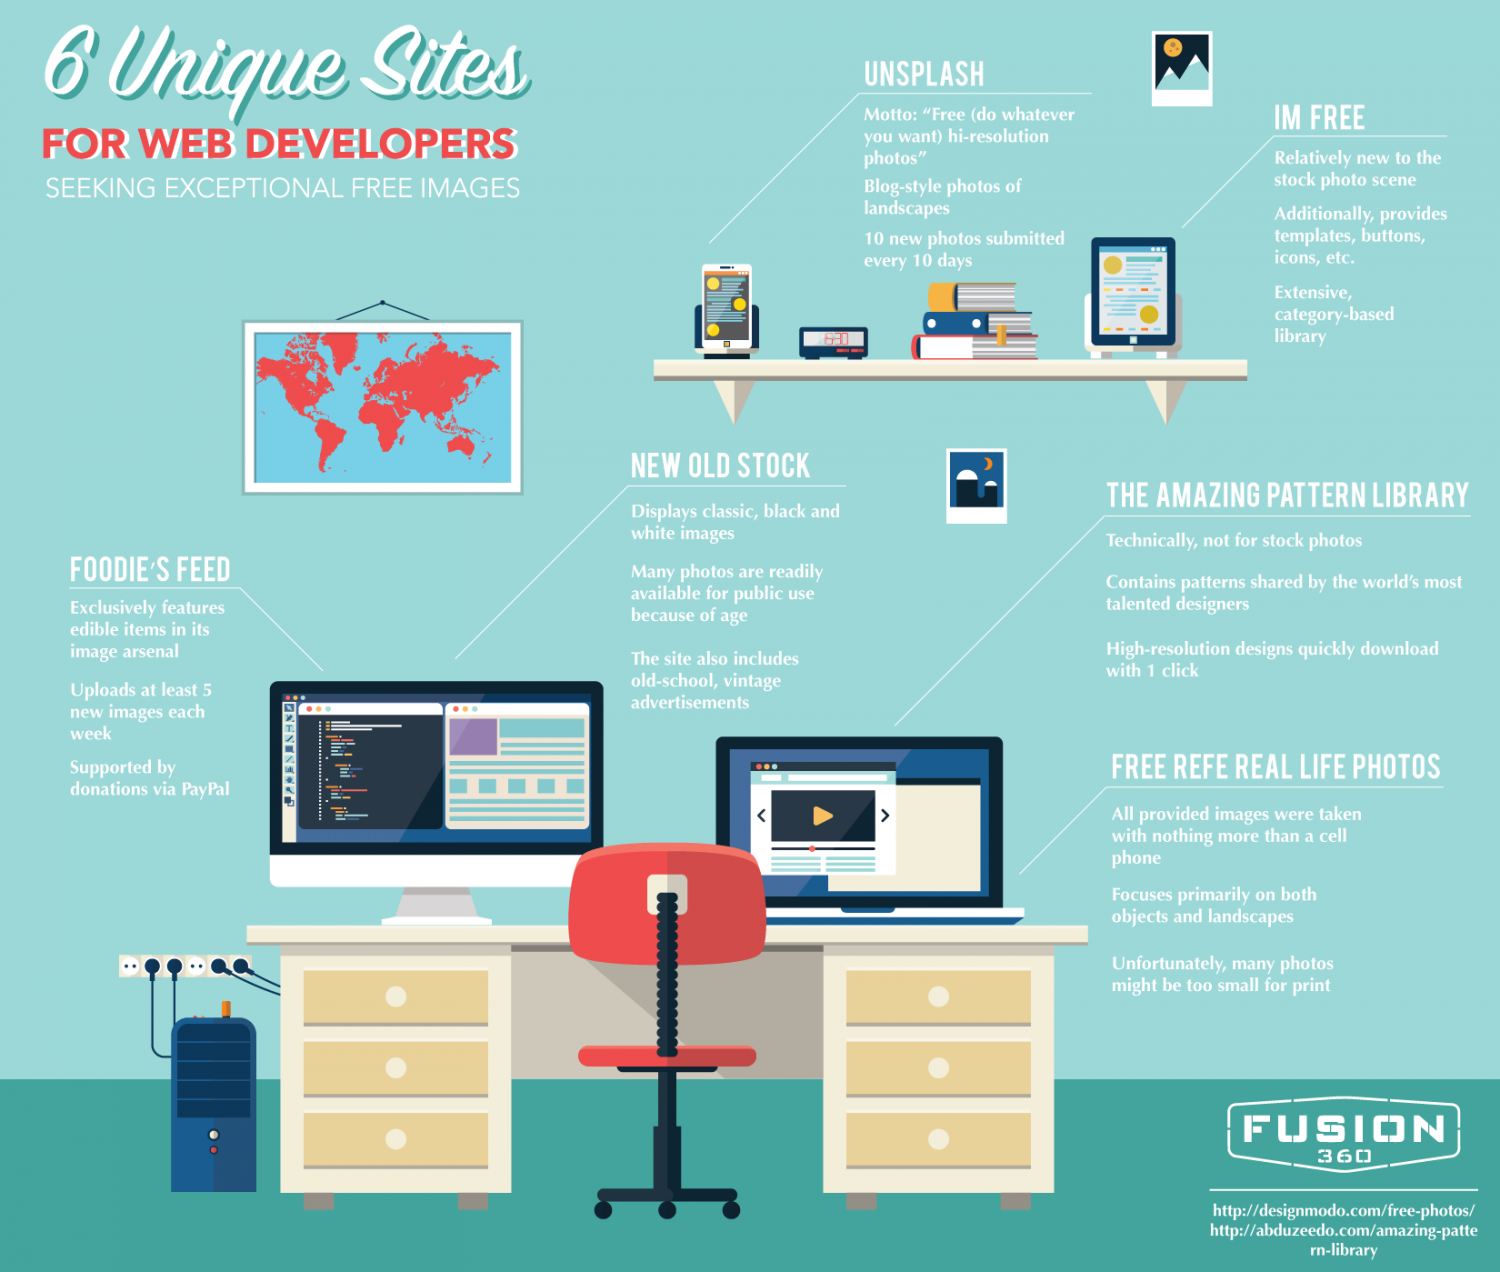 6 Unique Sites for Web Developers Seeking Exceptional Free Images Infographic